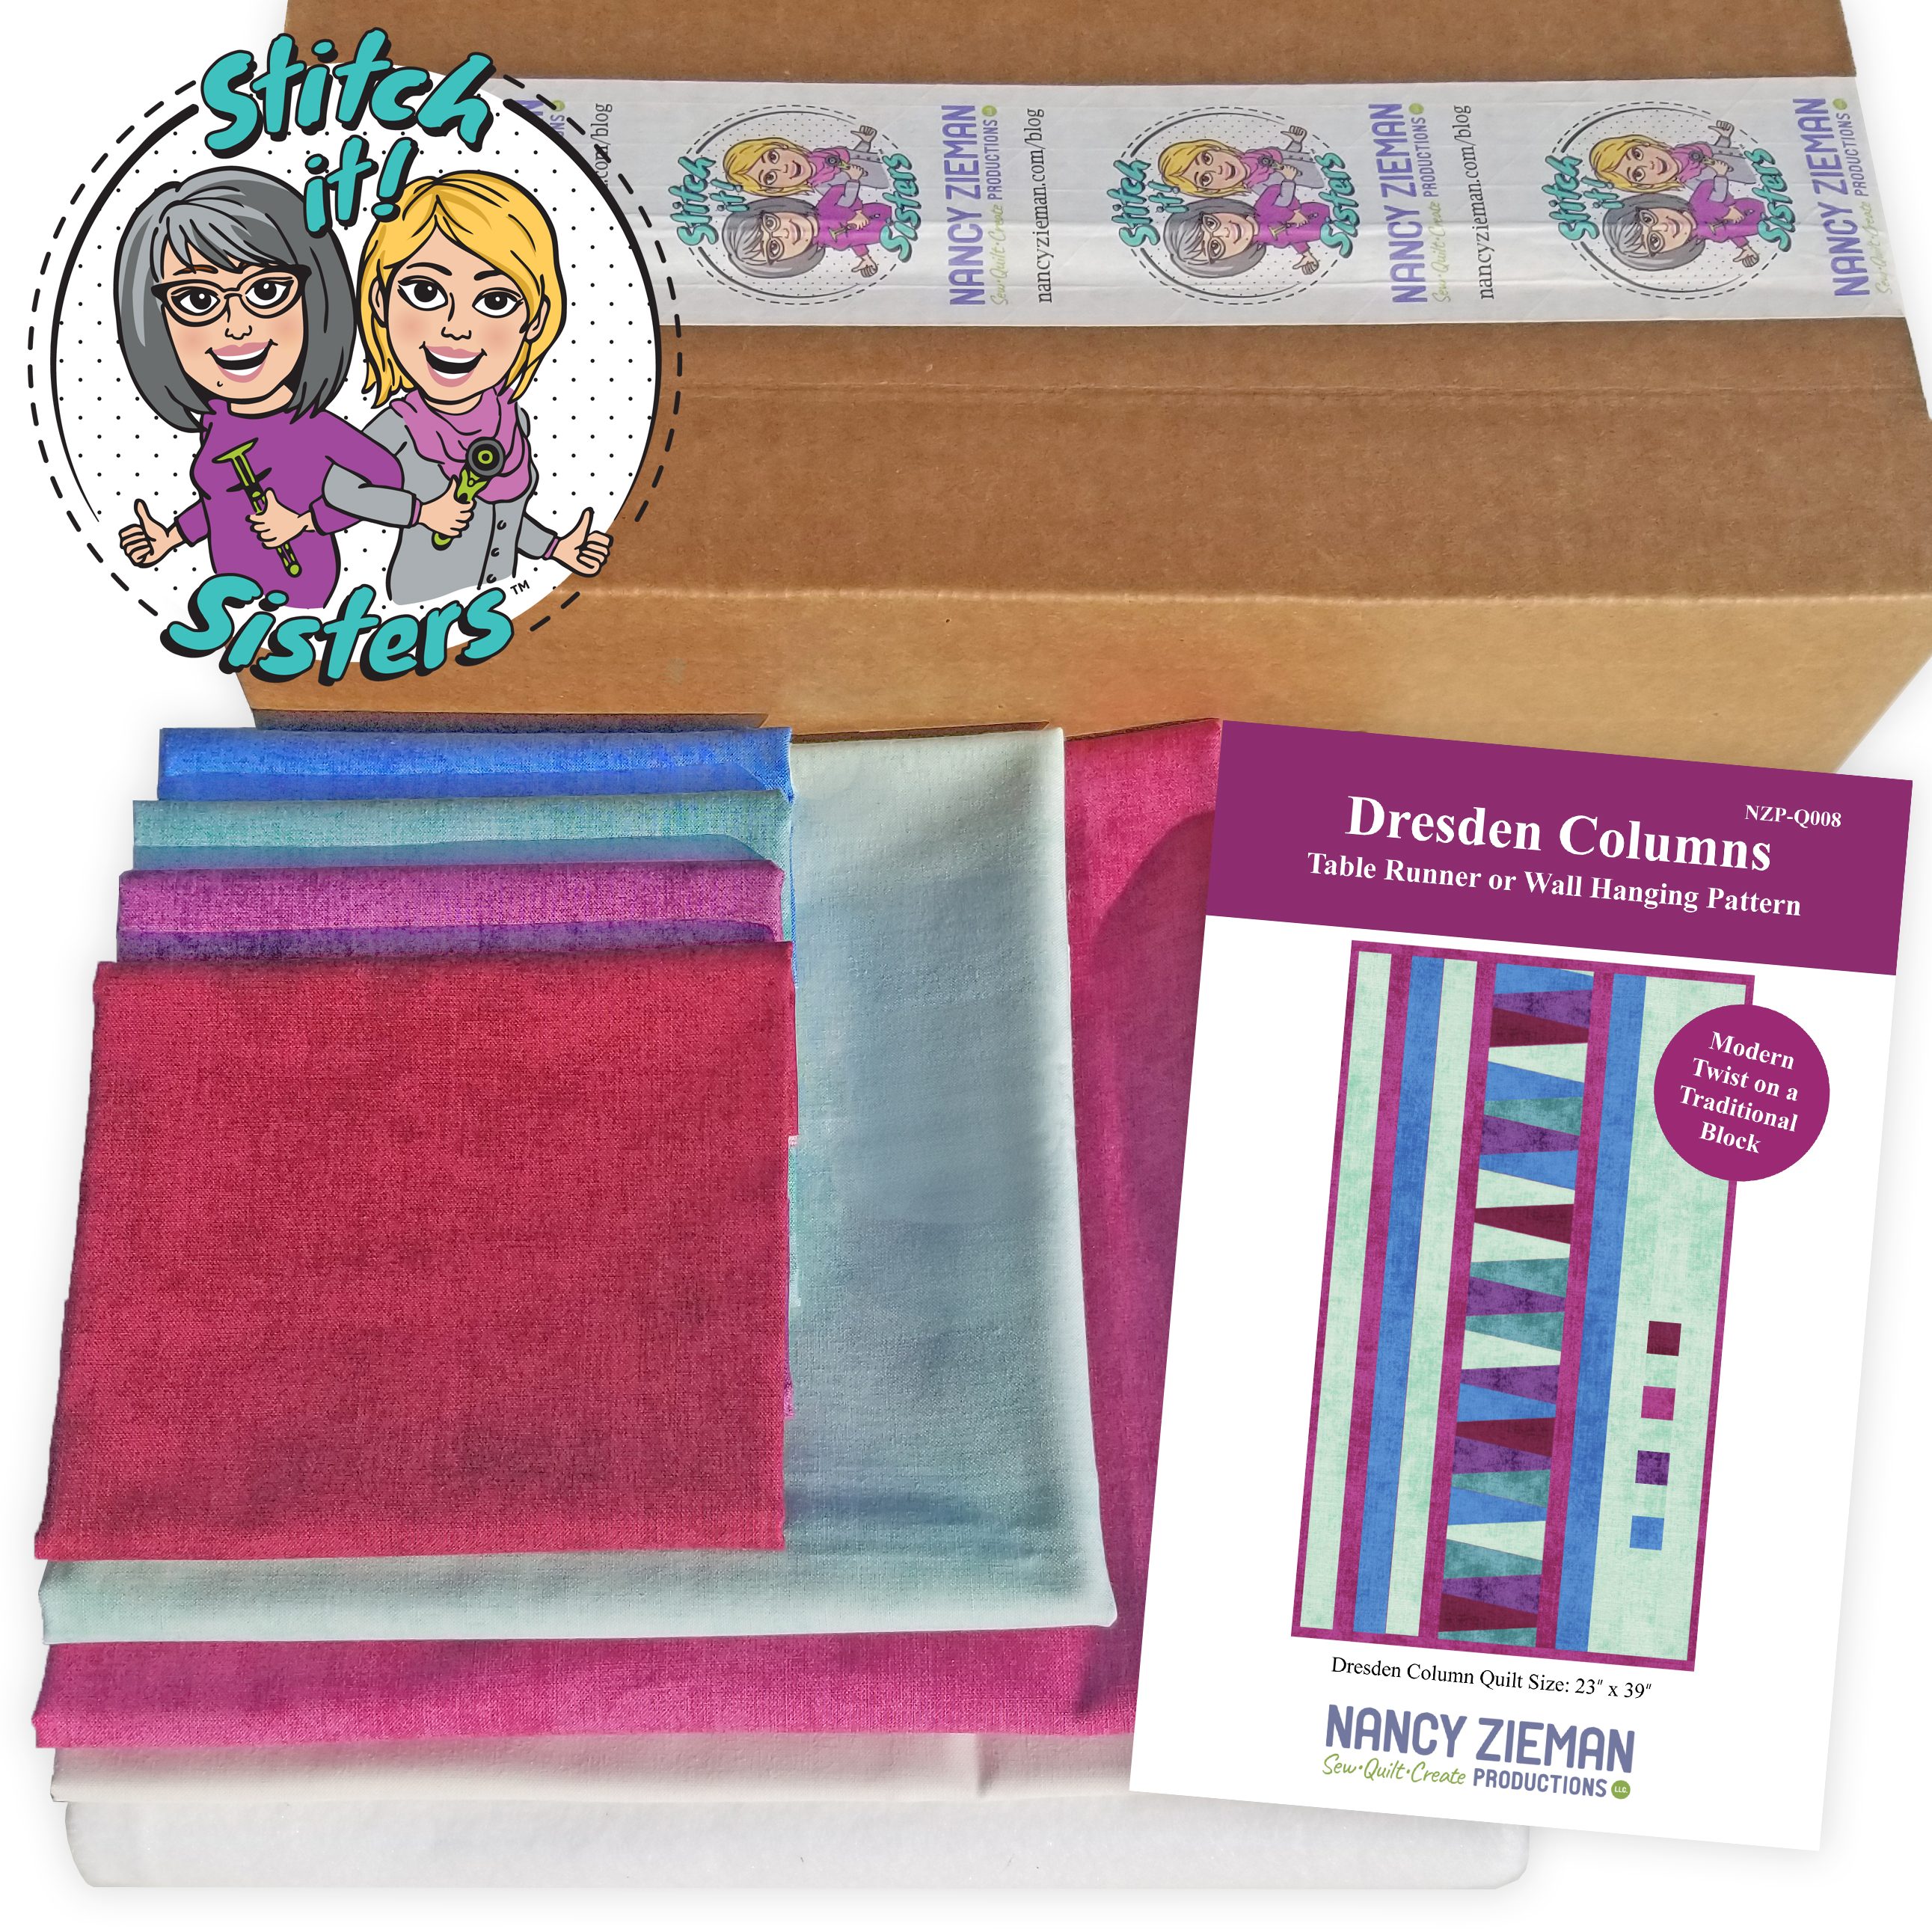 SiS Dresden Columns Table Runner Bundle Box available at ShopNZP.com